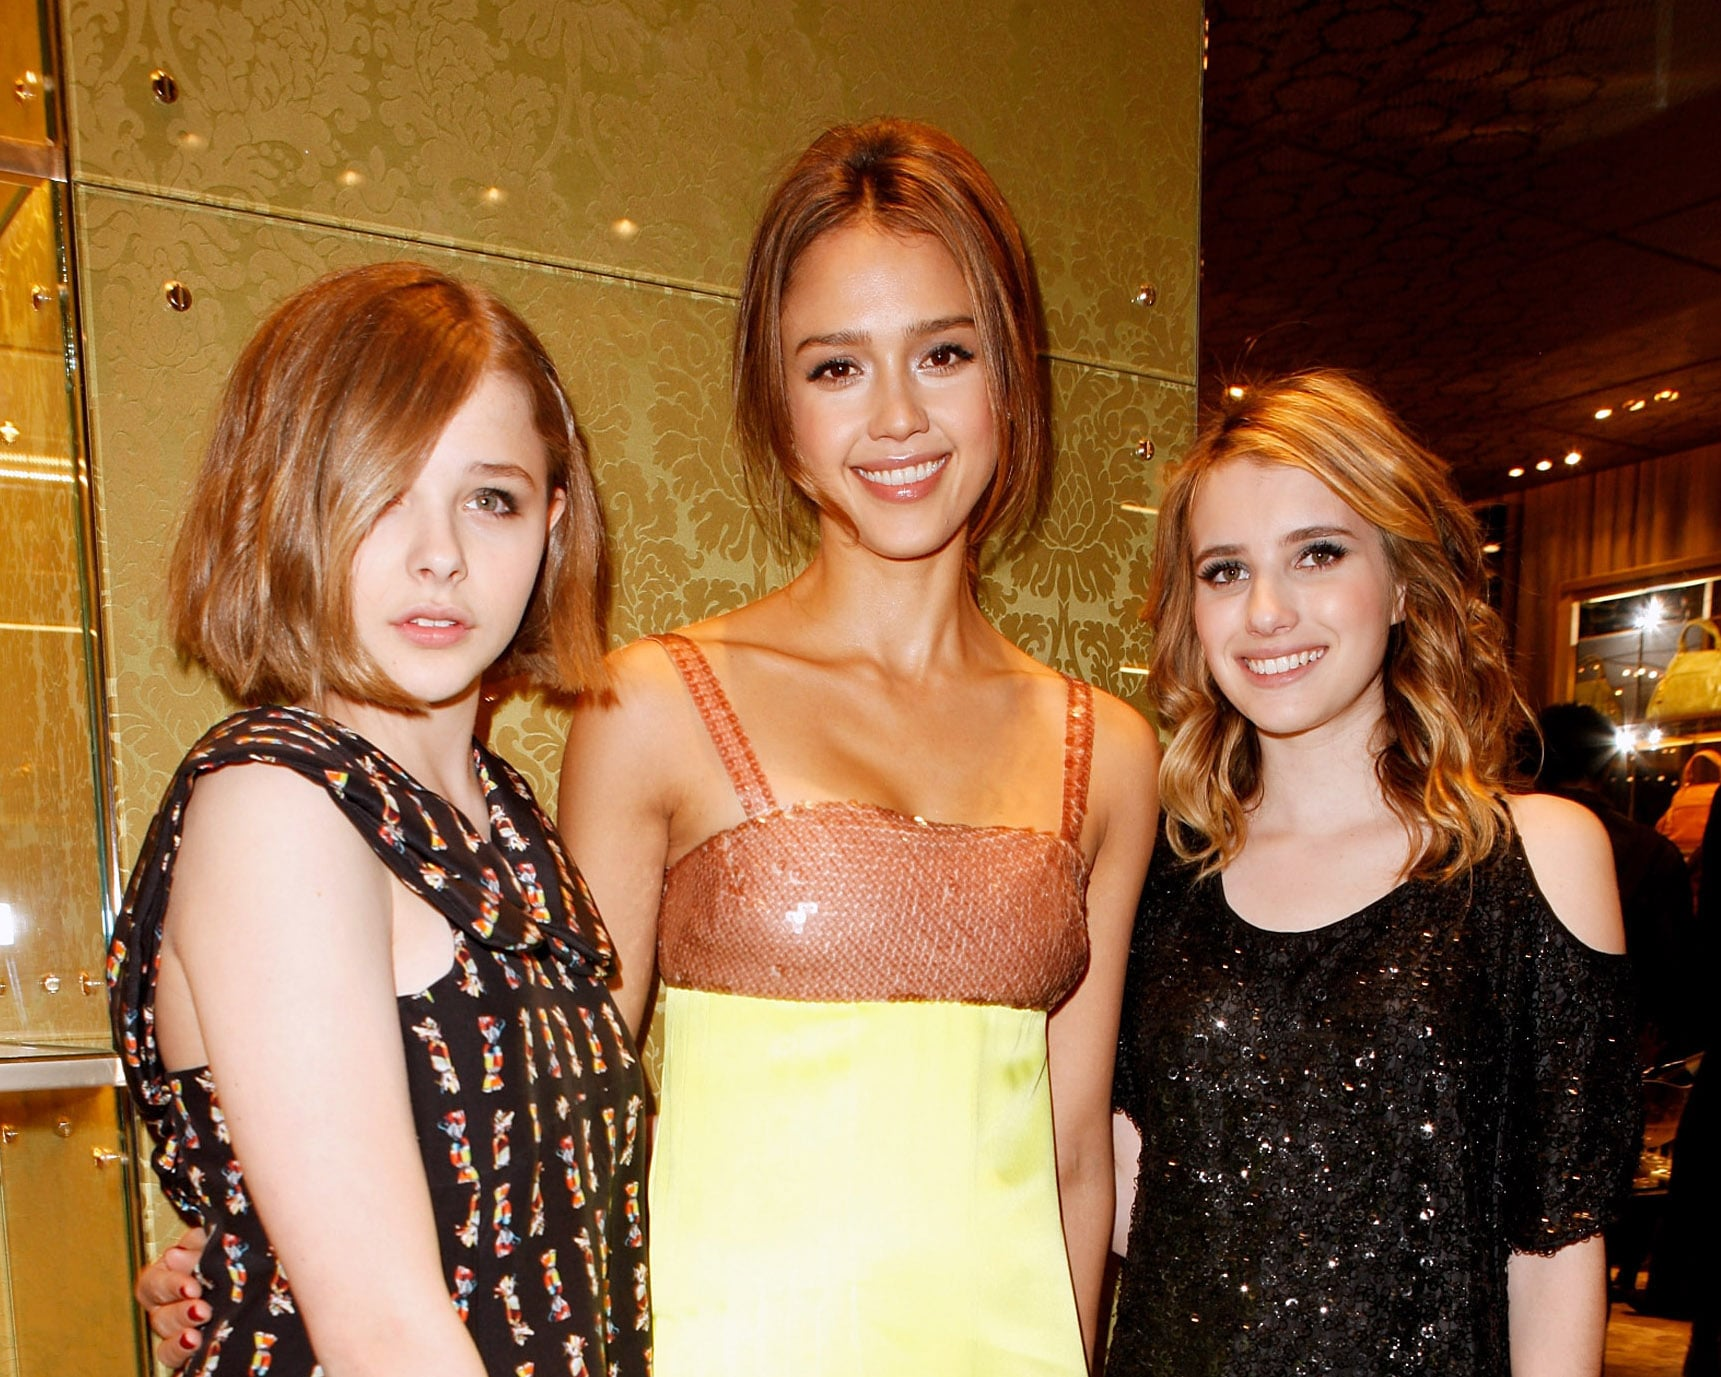 Emma roberts and friends in hotel lobby 3